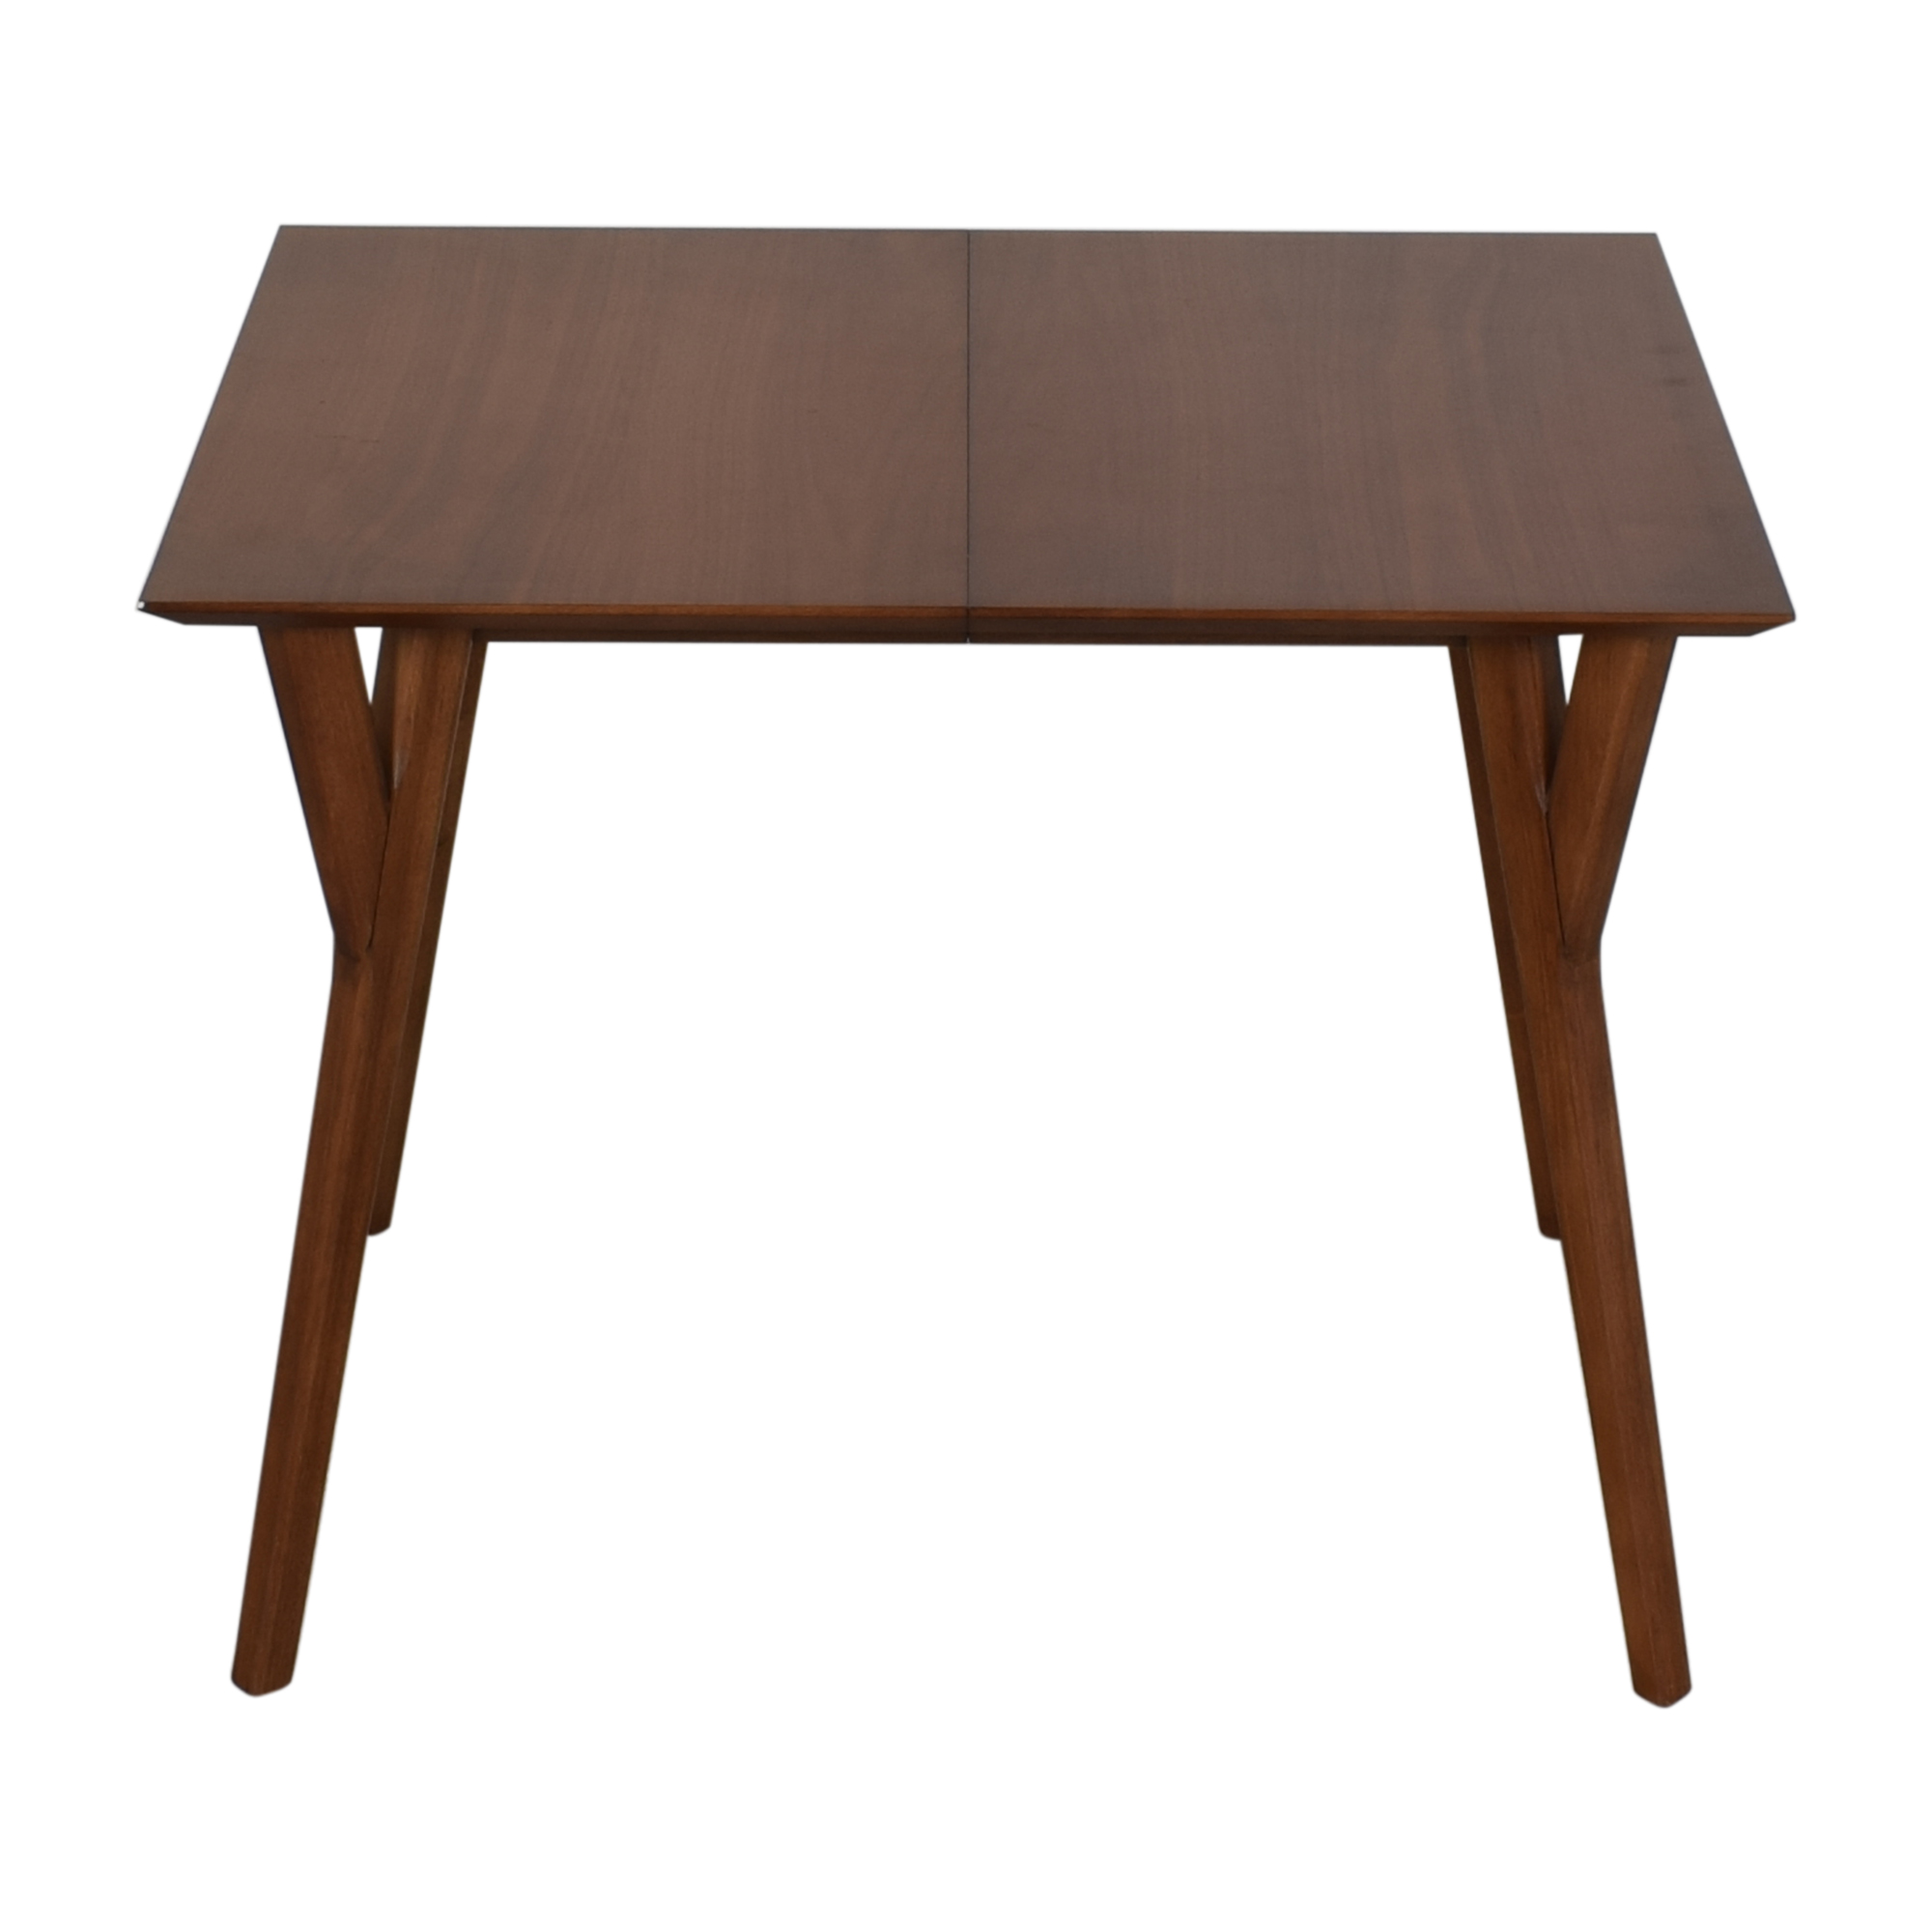 West Elm West Elm Mid-Century Expandable Dining Table used